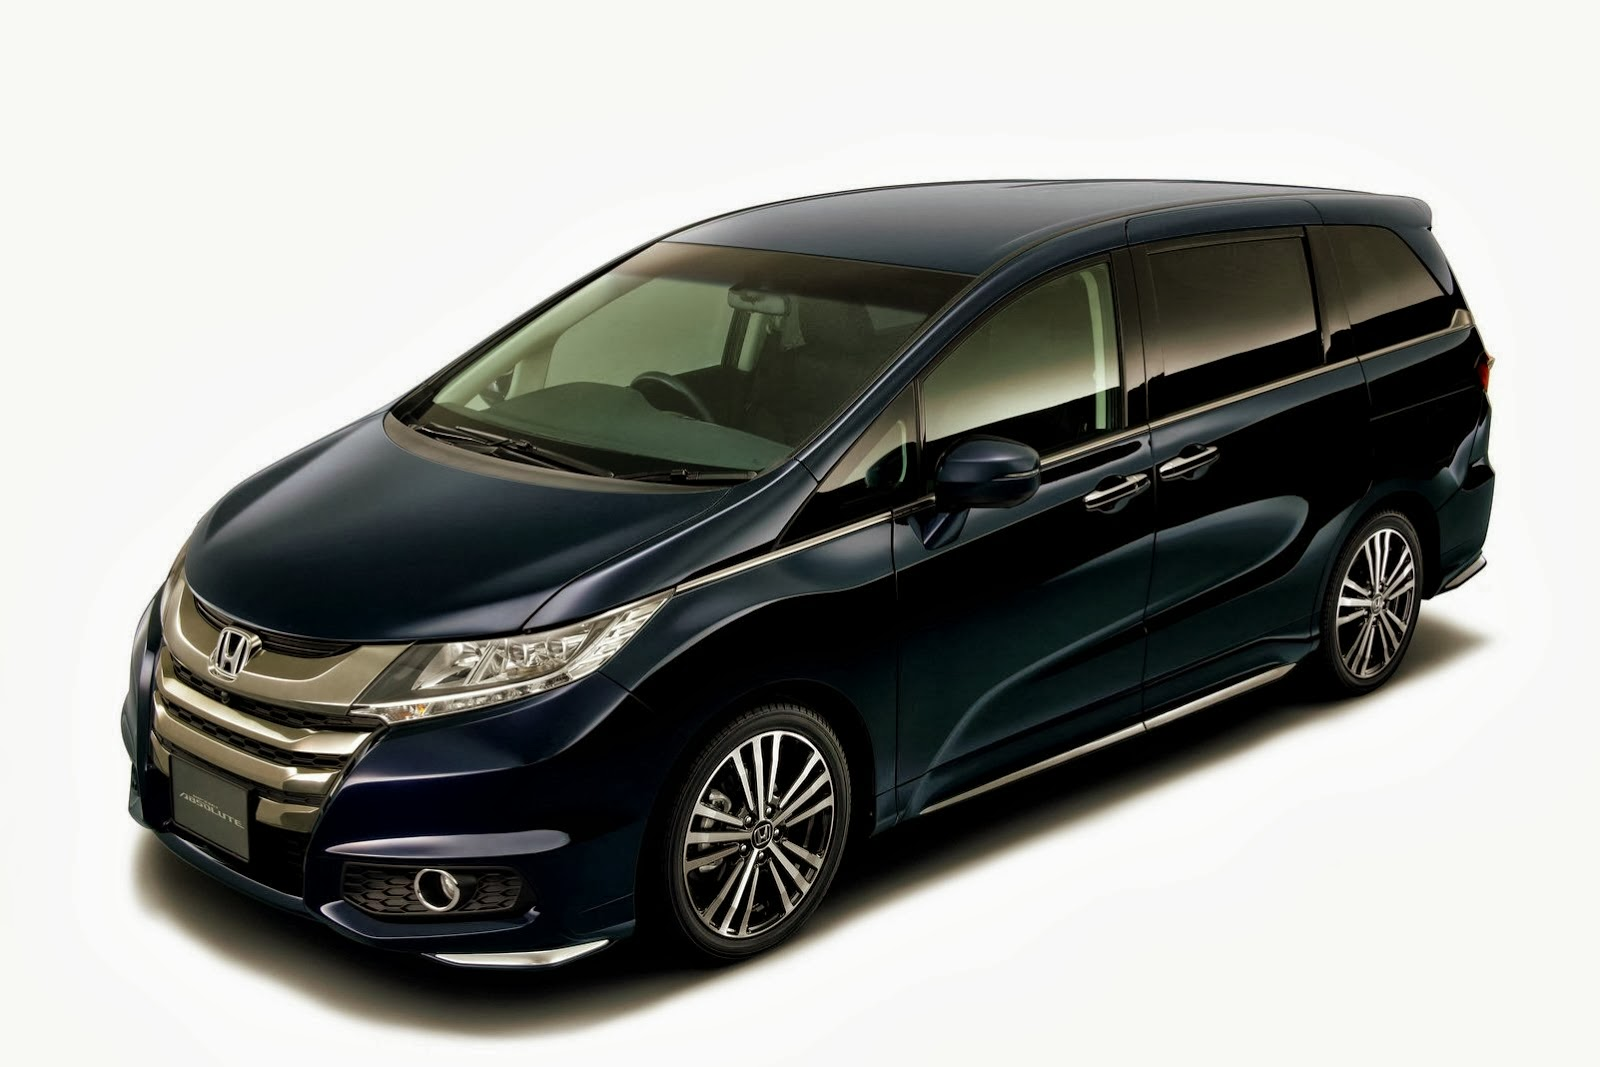 vroom5000cc all new honda odyssey honda gems on tokyo motor show 2013. Black Bedroom Furniture Sets. Home Design Ideas